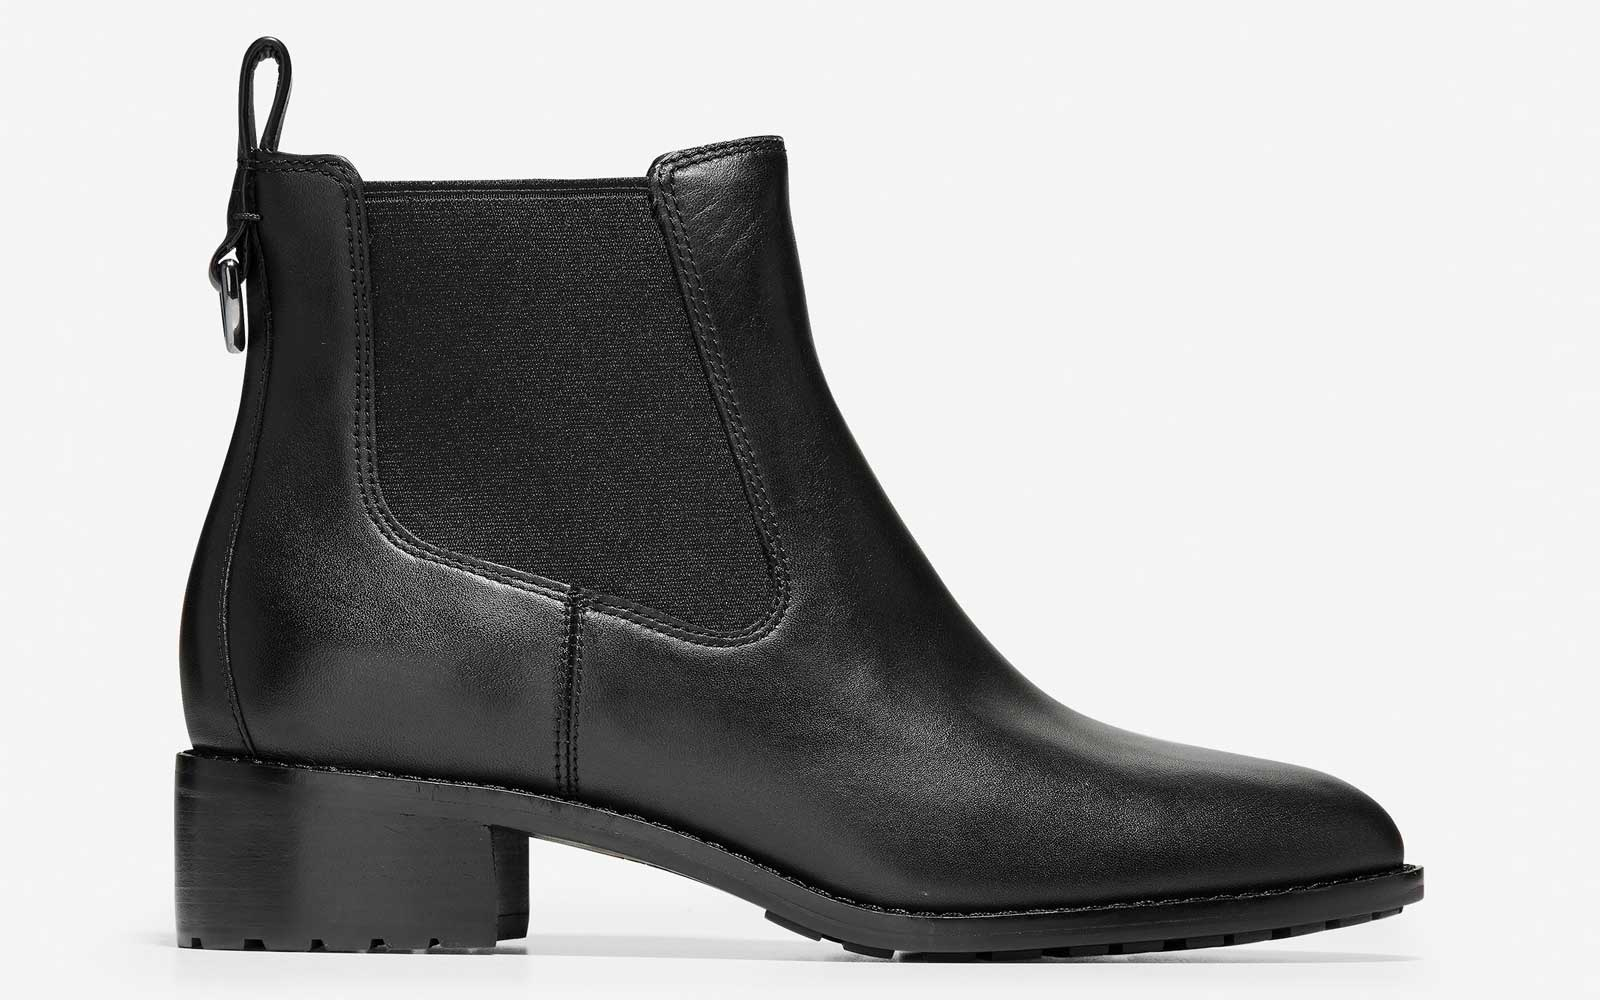 These waterproof leather boots have completely replaced my traditional rubber rain boots